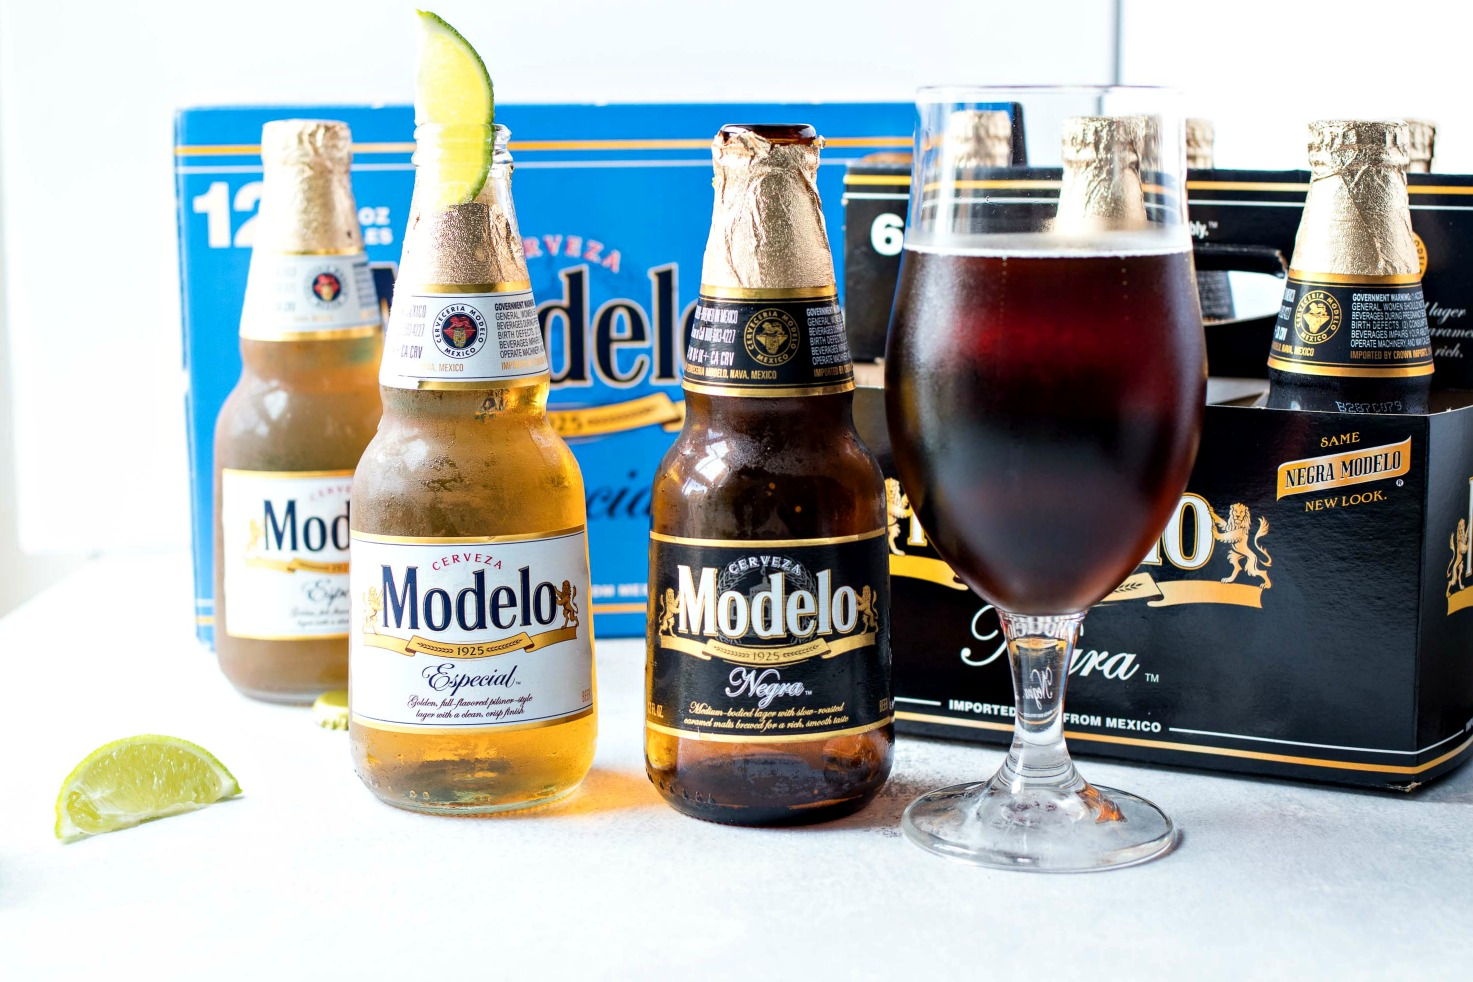 Two sic packs of Modelo, one especial, and one negro